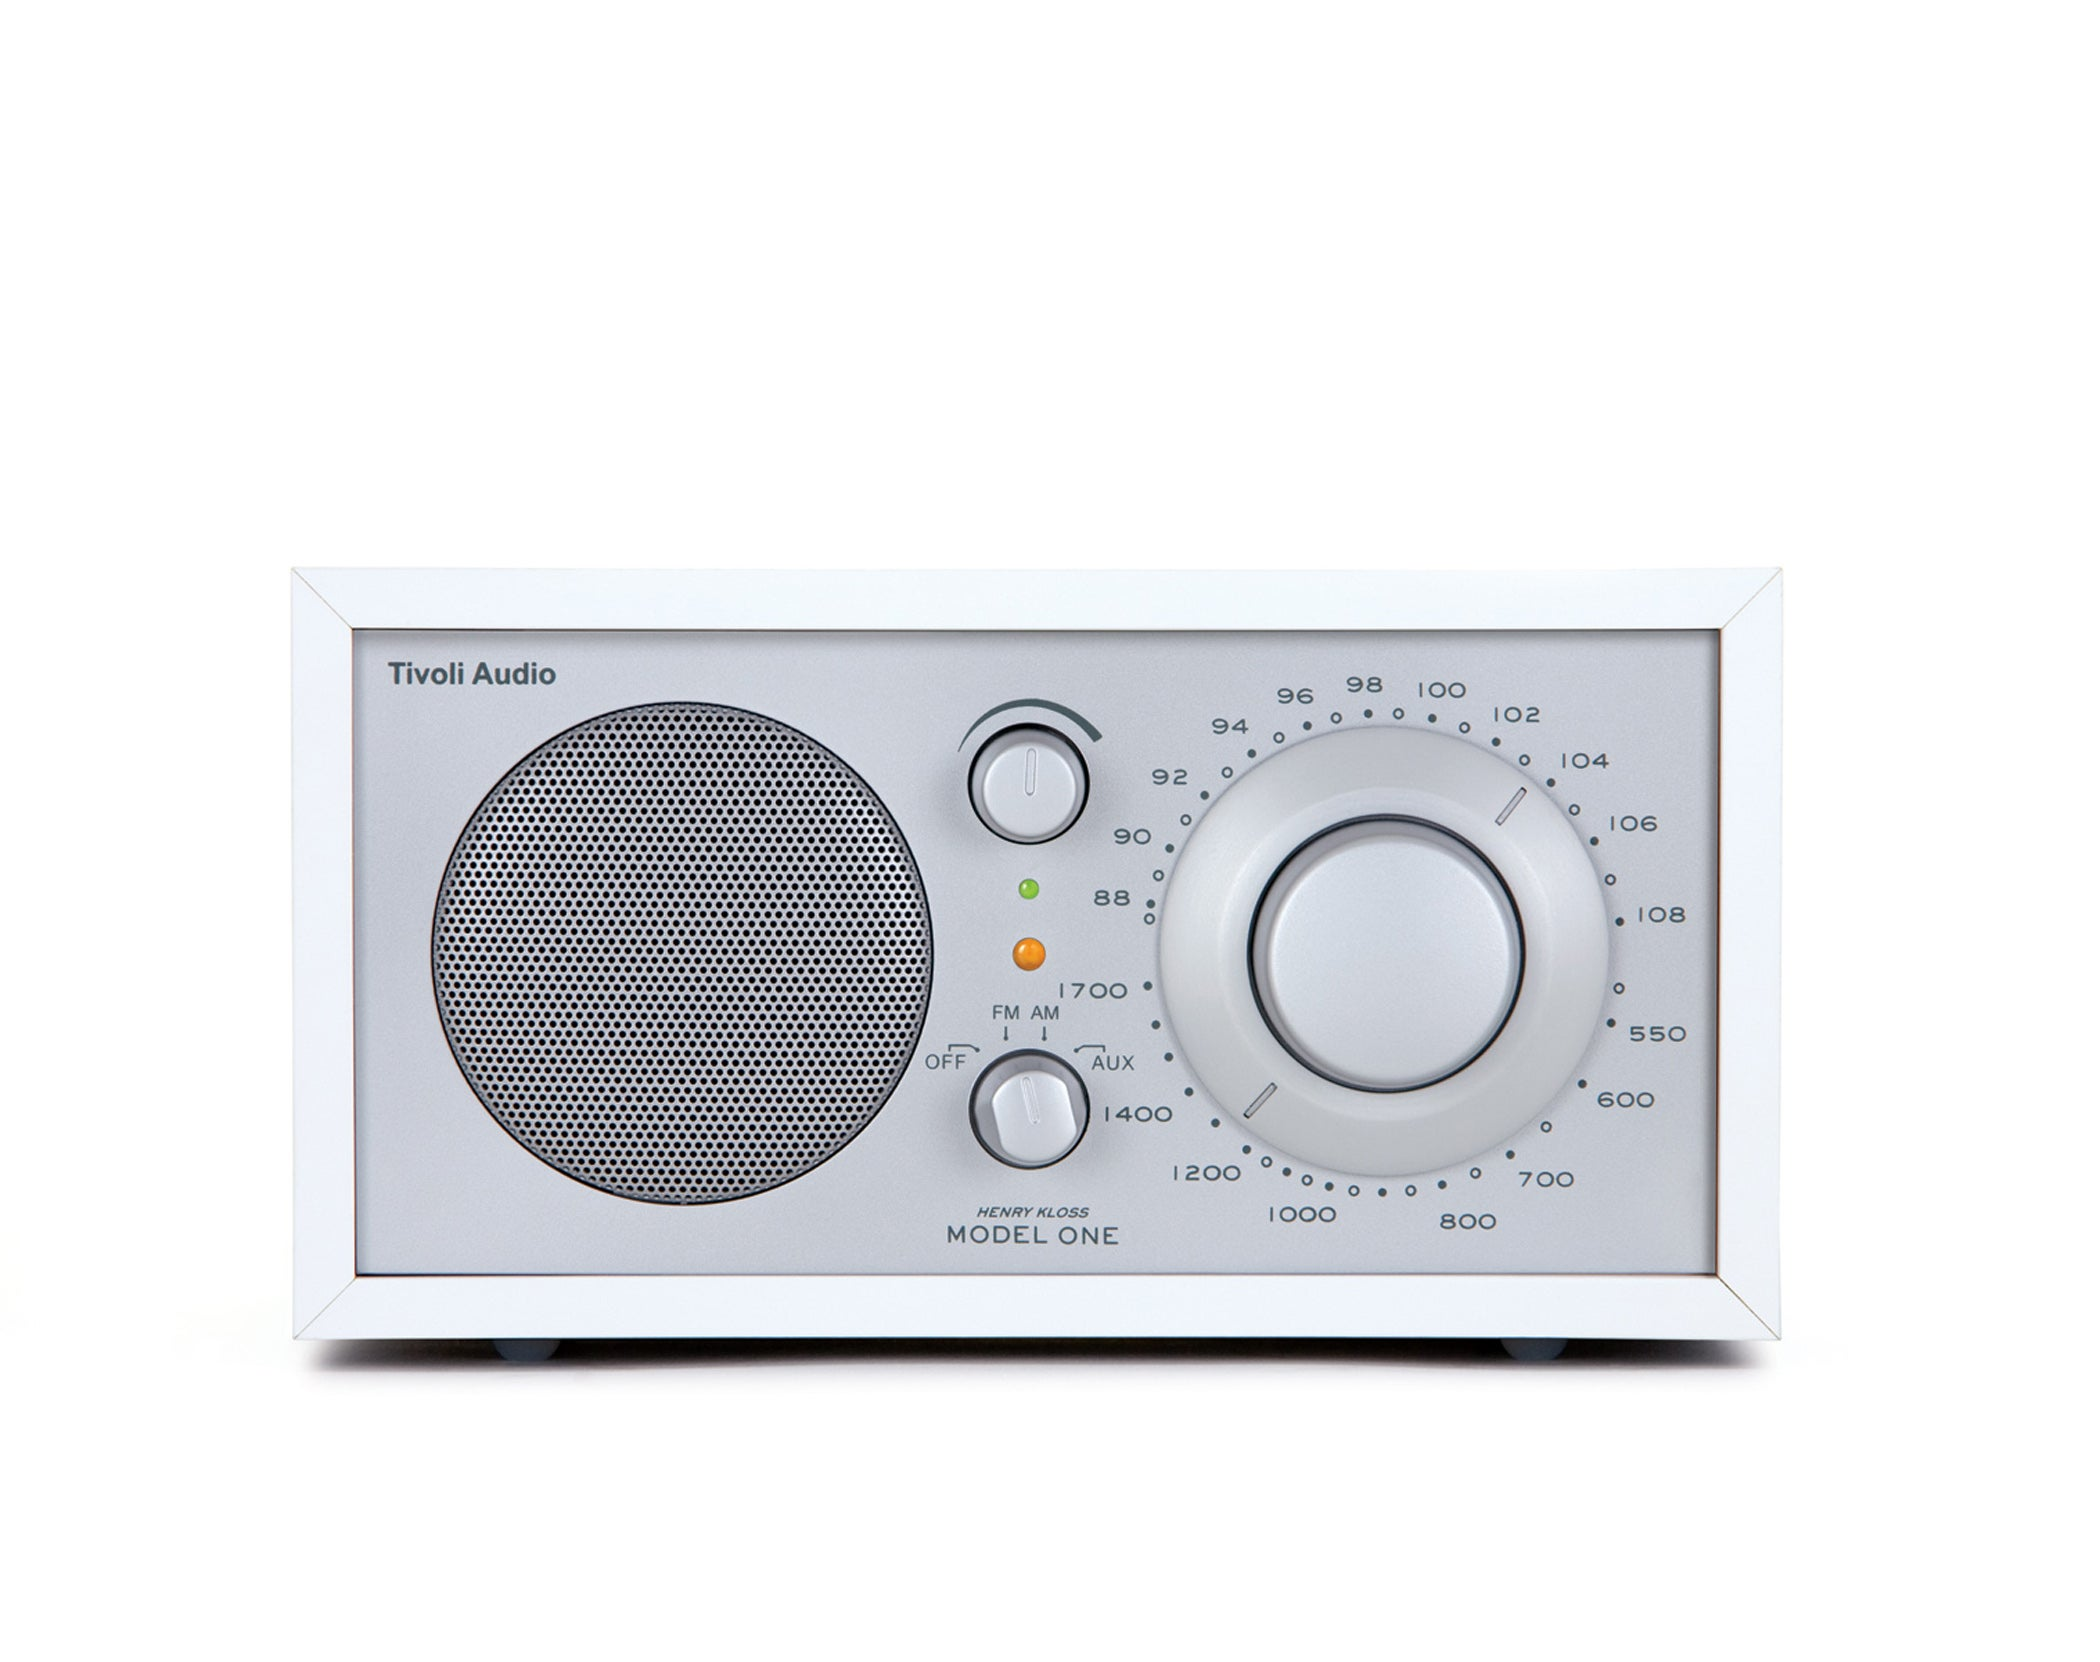 Tivoli Model One Henry Kloss AM/FM Mono Table Radio - White/Silver